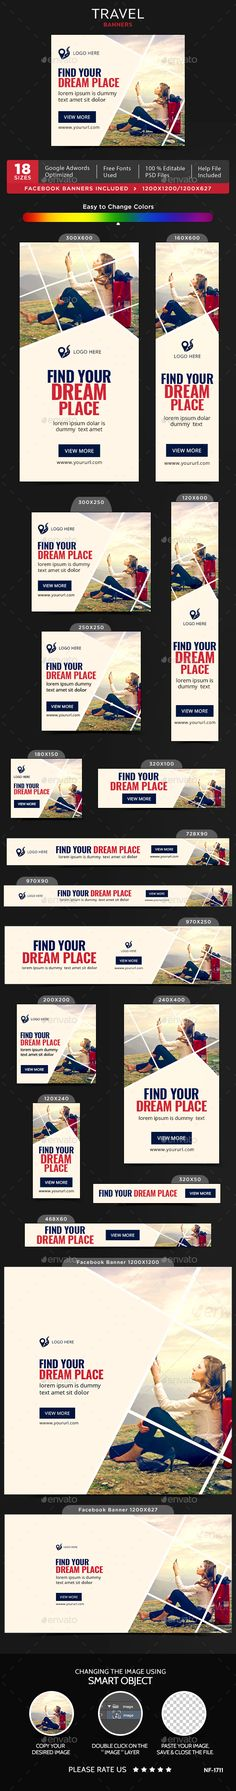 Travel Banners - Banners & Ads Web Elements Download here : https://graphicriver.net/item/travel-banners/19379862?s_rank=102&ref=Al-fatih